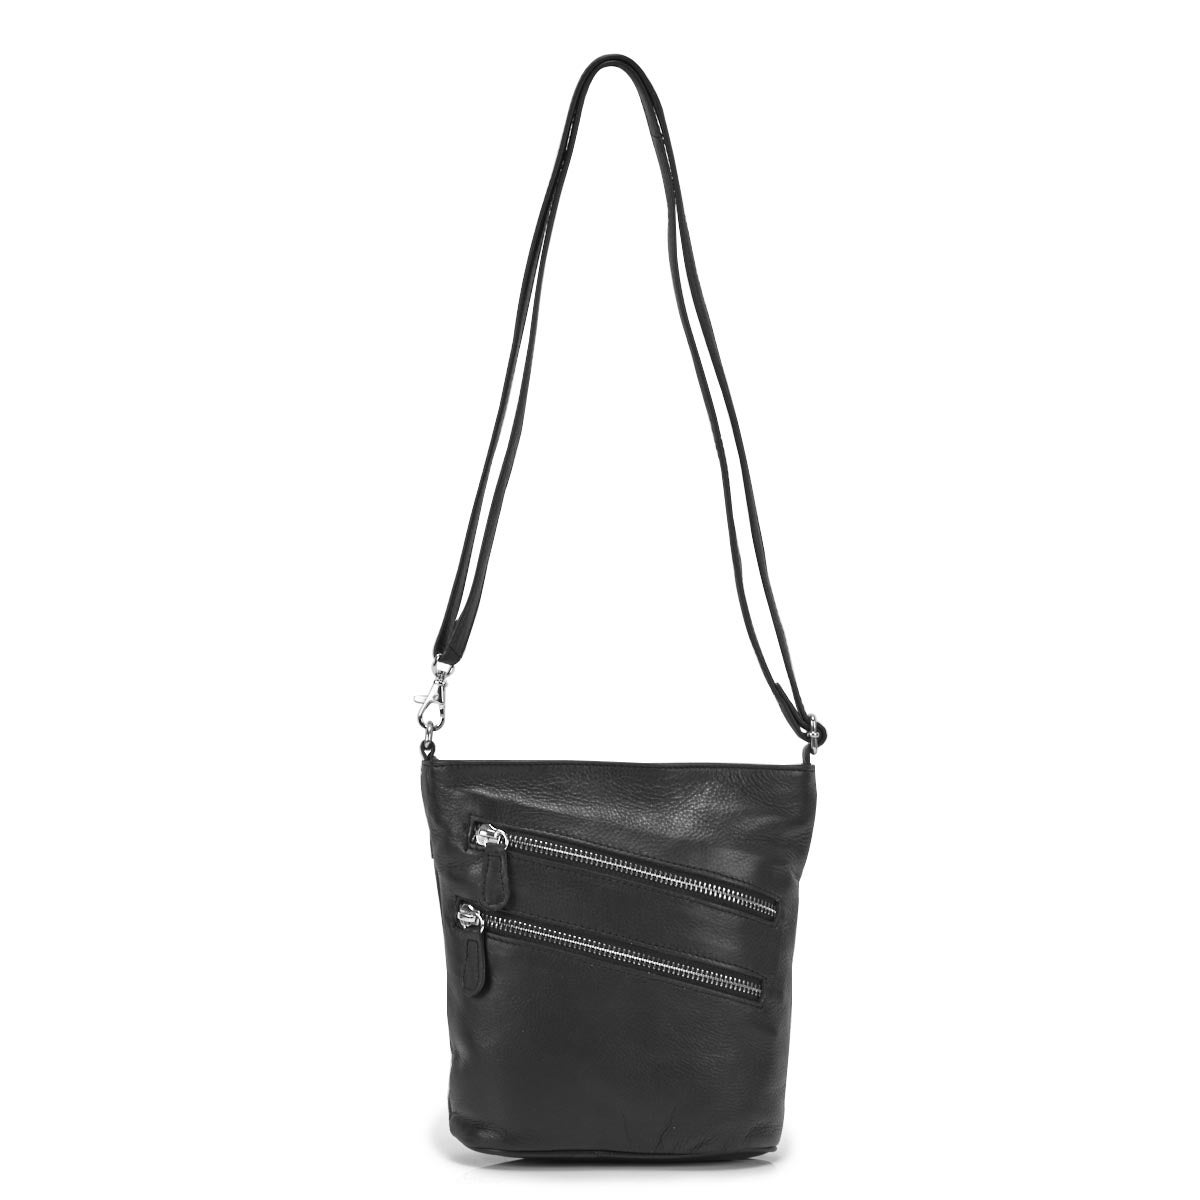 Lds Cassie black crossbody bag